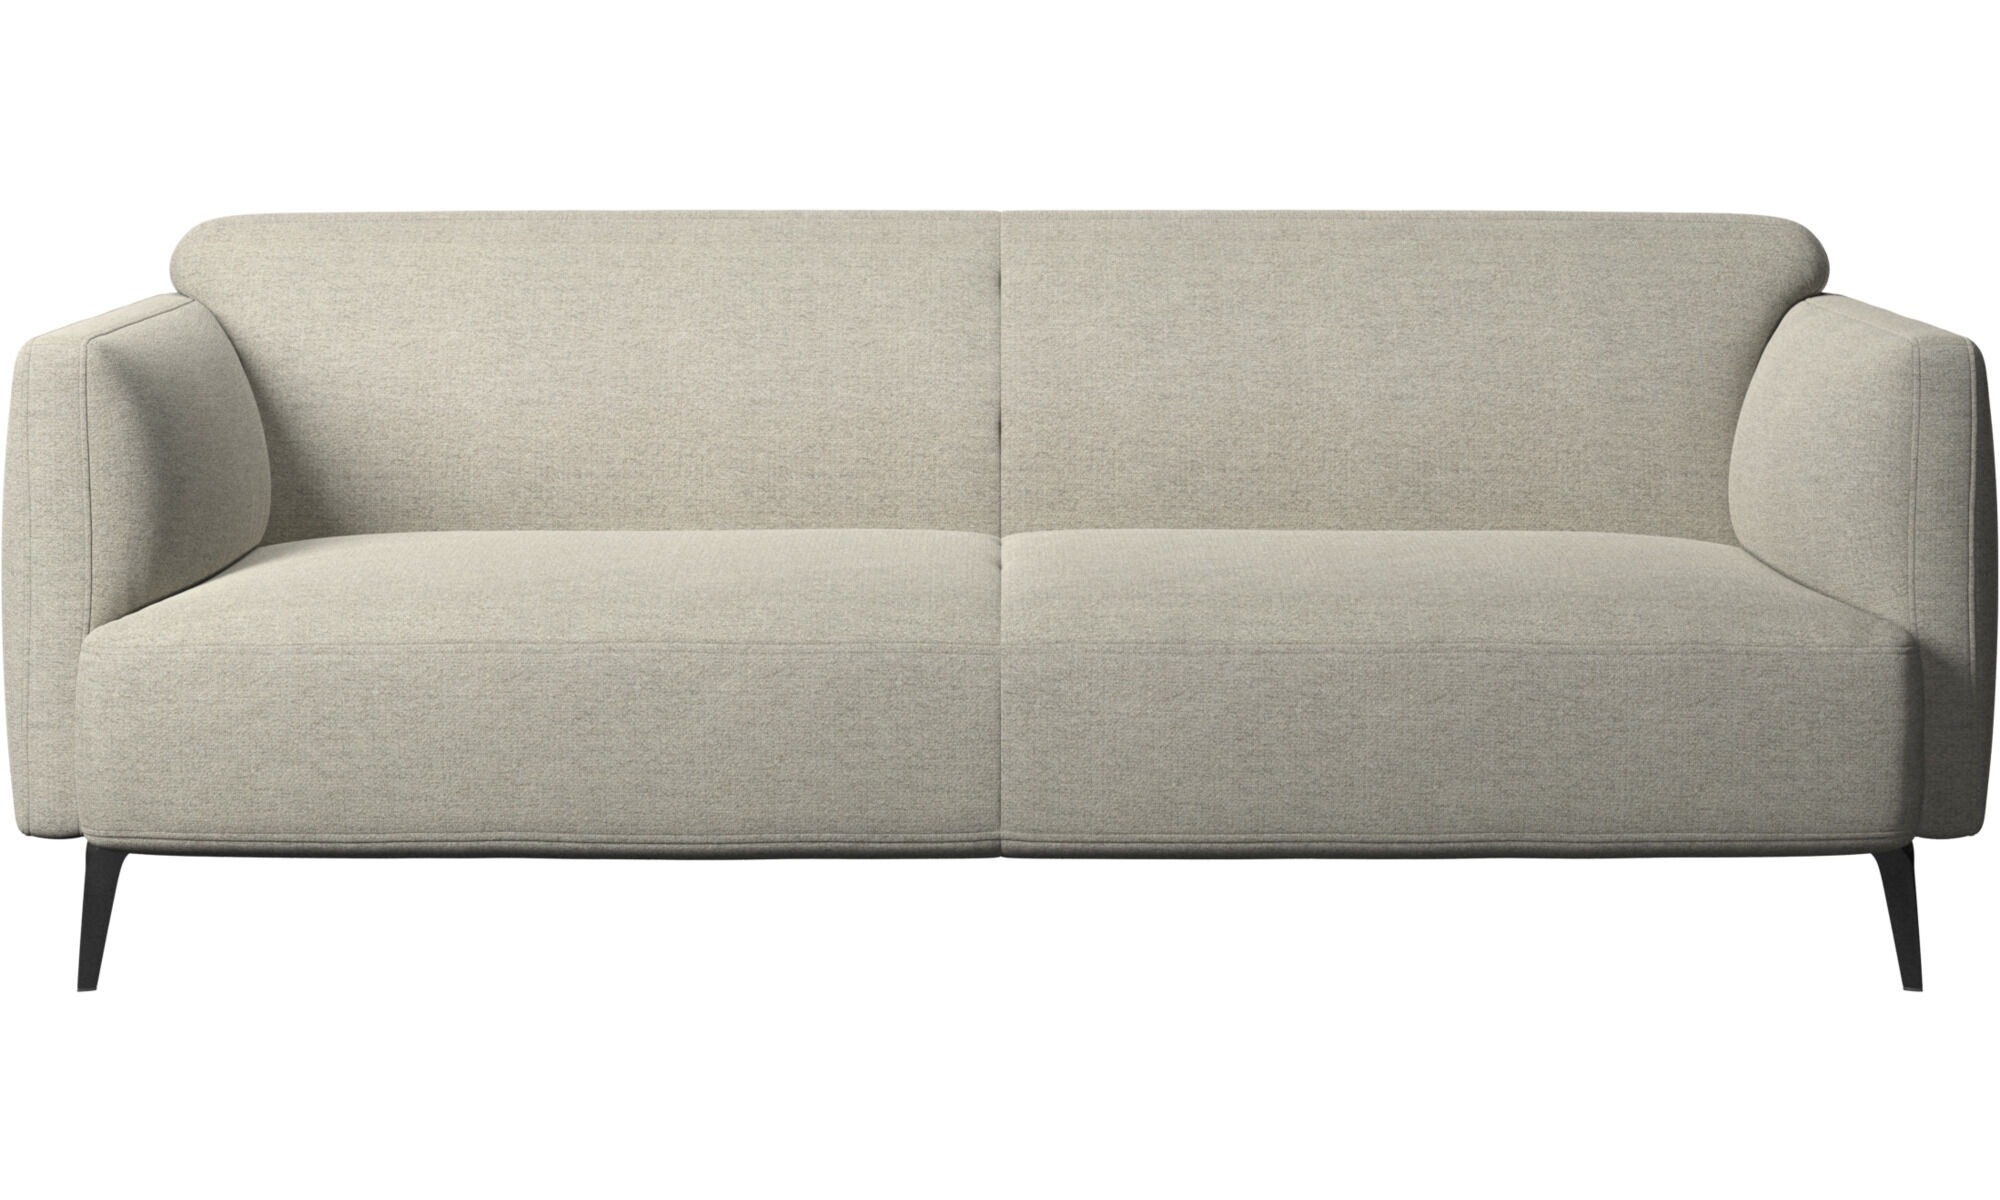 MODENA Modena 2.5 seater sofa with armrests